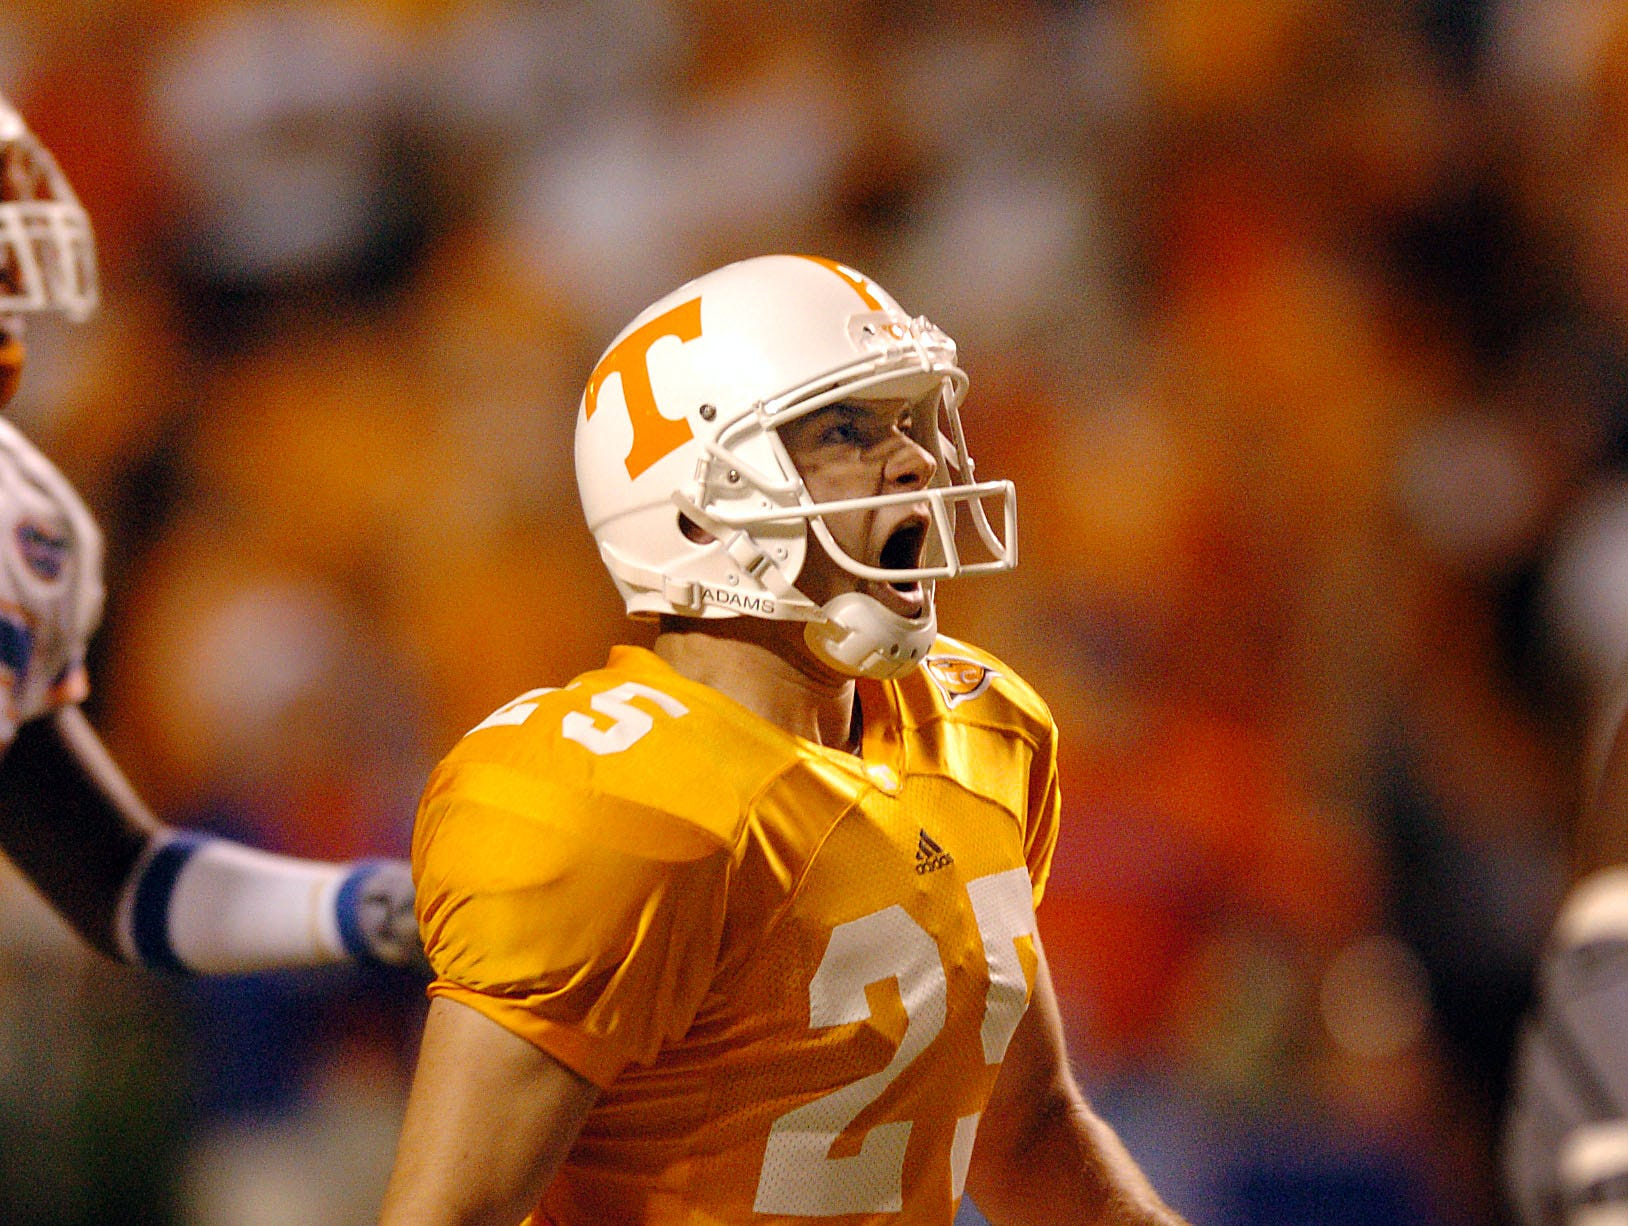 Tennessee's (25) James Wilhoit reacts the instant he sees that his 50-yard fieldgoal was good for the winning point Saturday night to beat Florida 30-28.  9/18/2004